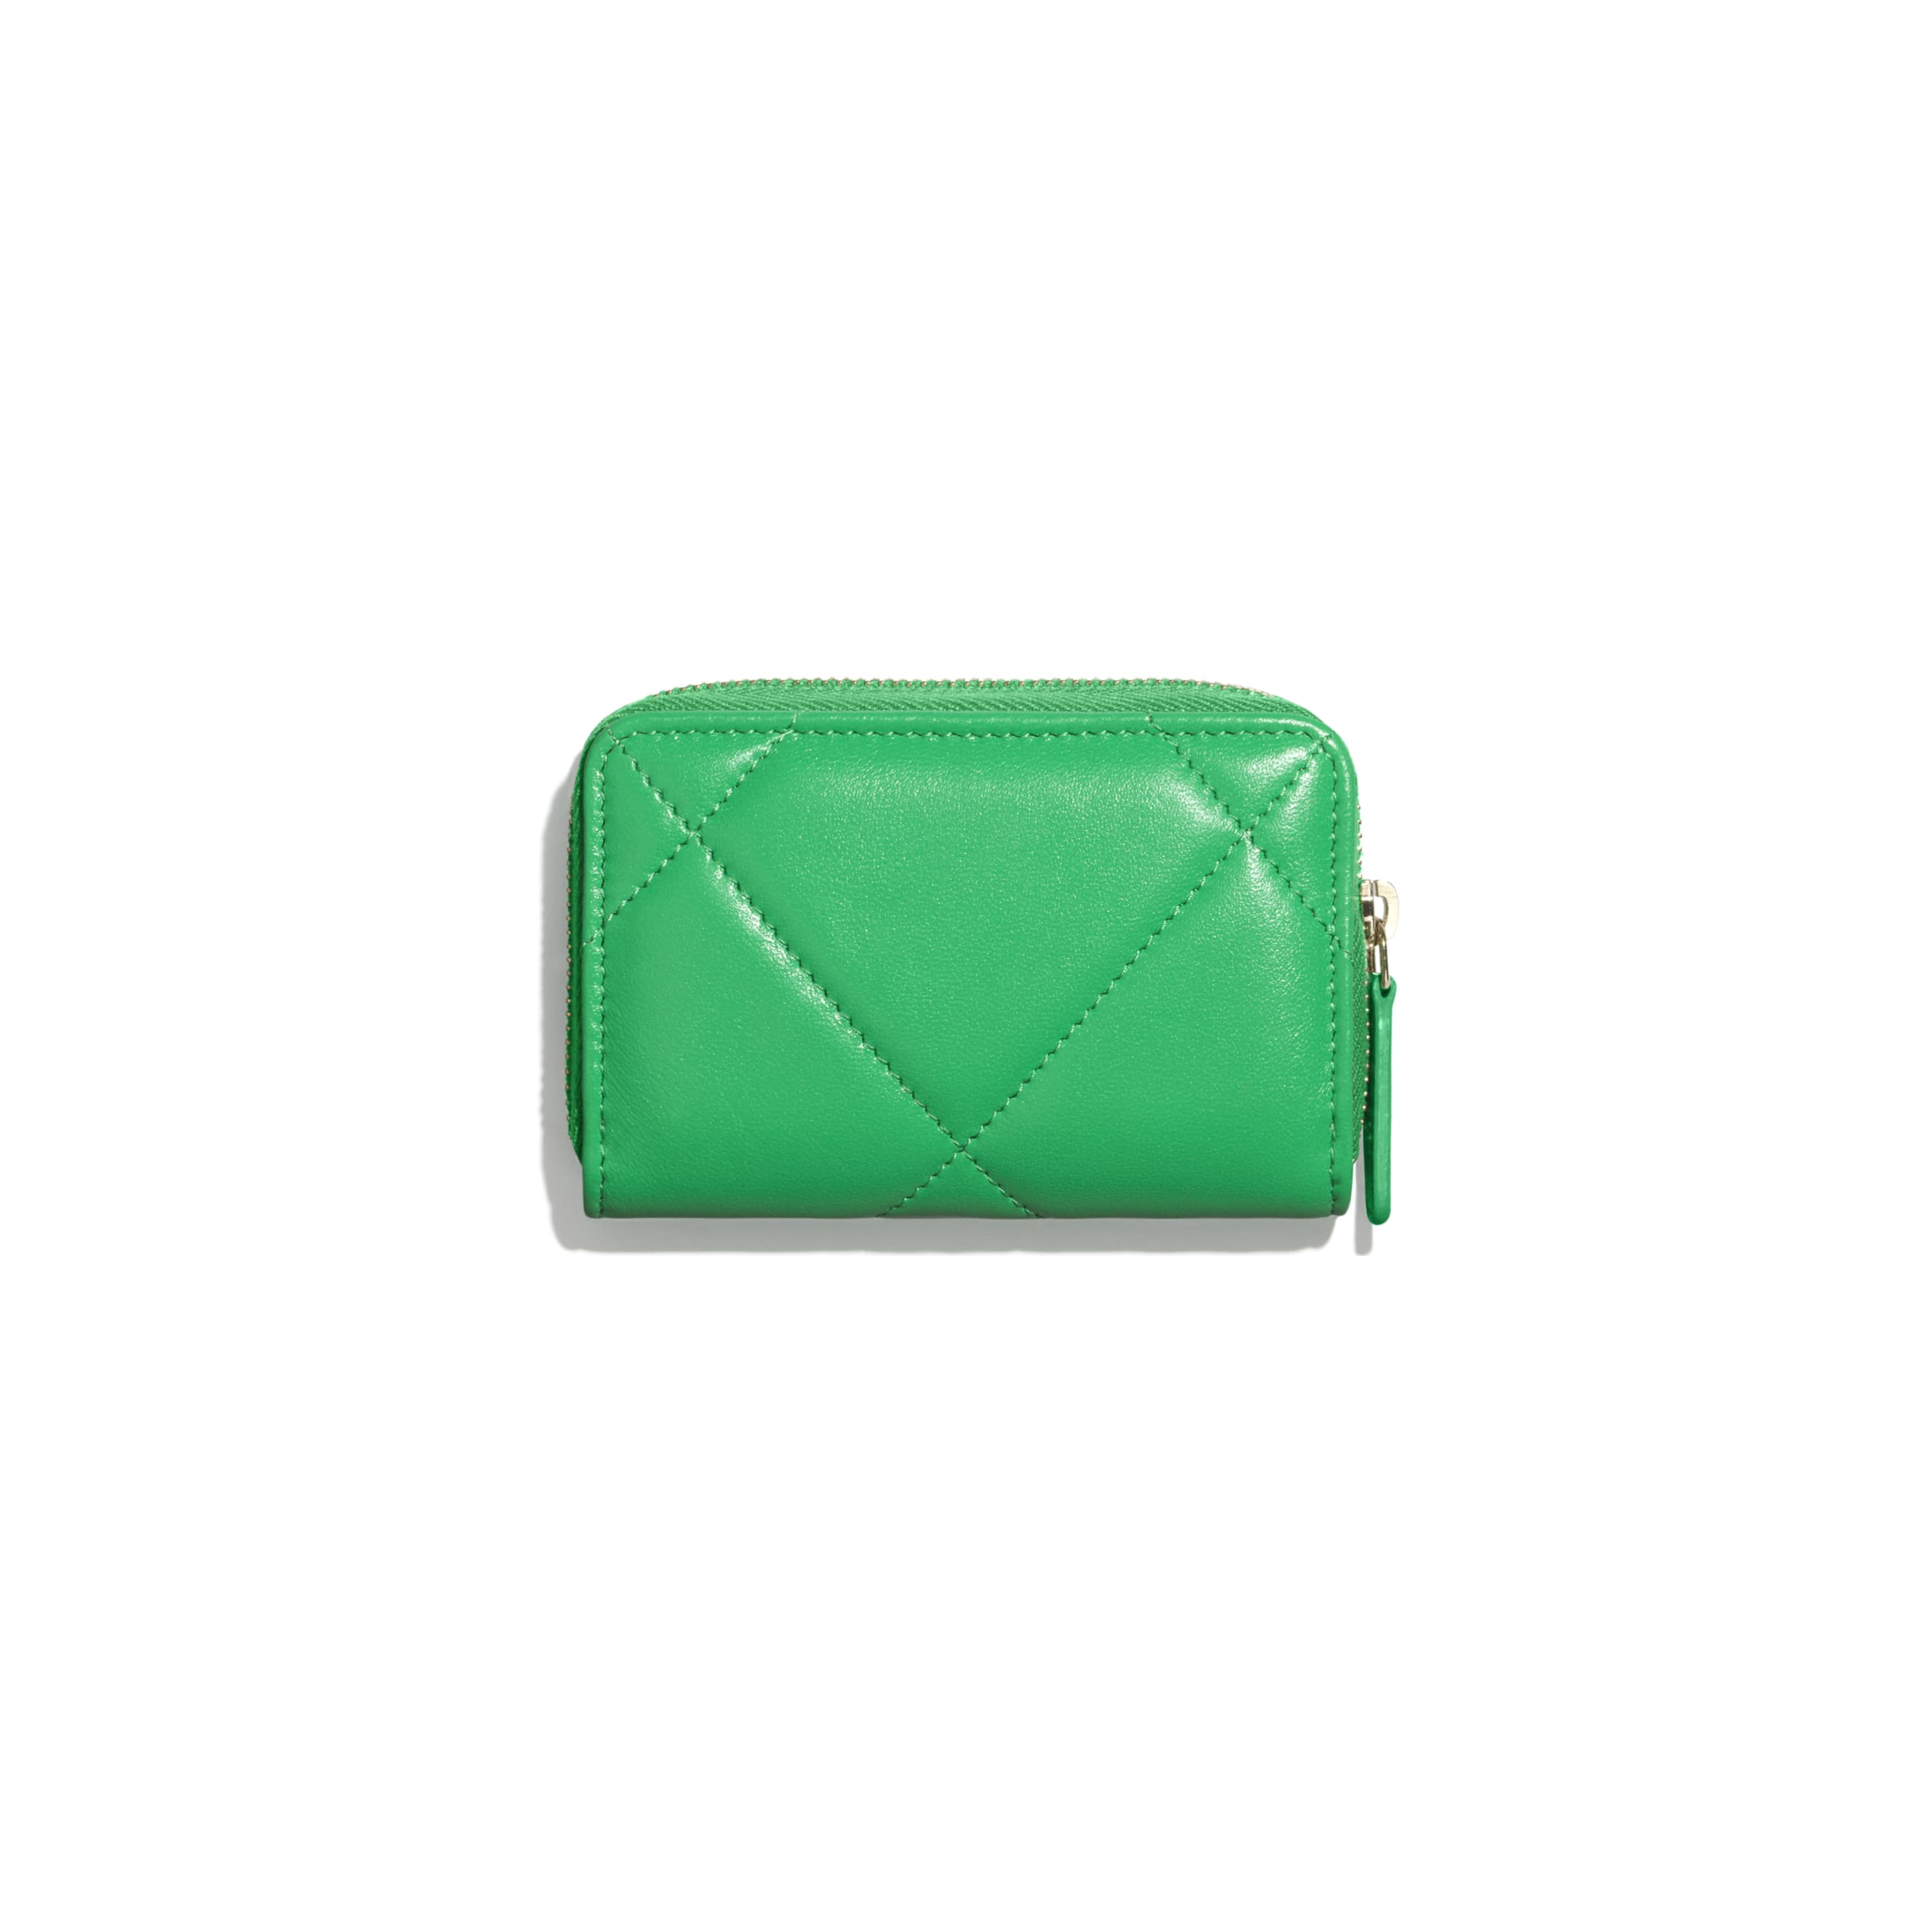 CHANEL 19 Zipped Coin Purse - Green - Lambskin, Gold-Tone, Silver-Tone & Ruthenium-Finish Metal - Alternative view - see standard sized version